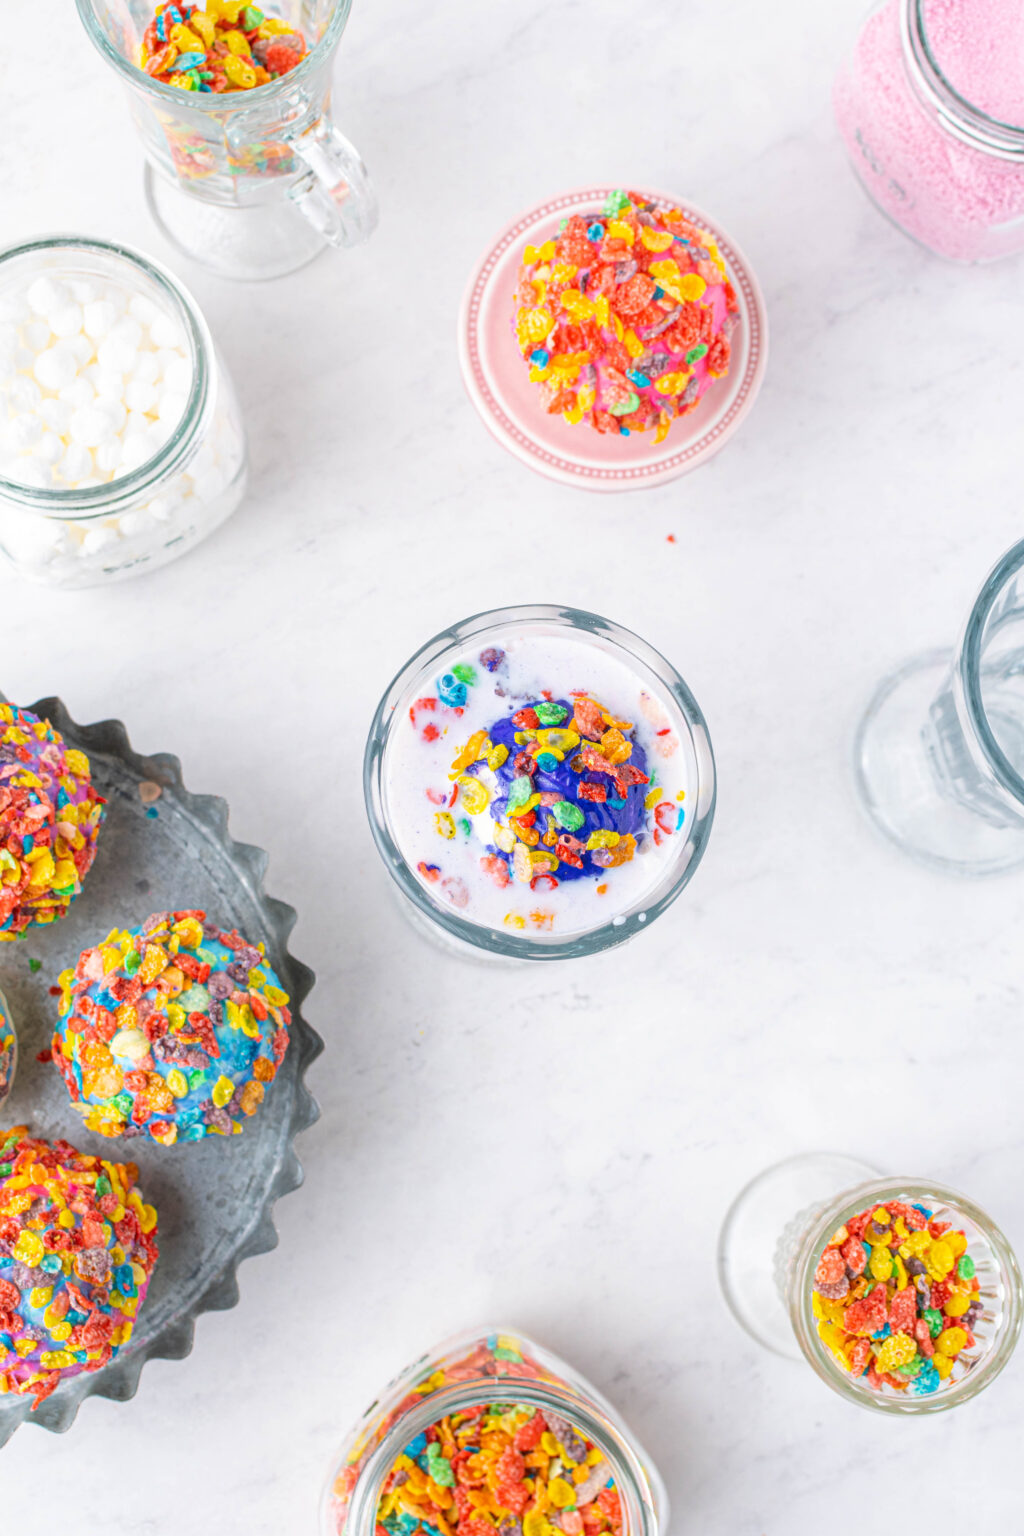 fruity pebble hot cocoa bomb melting in glass of milk